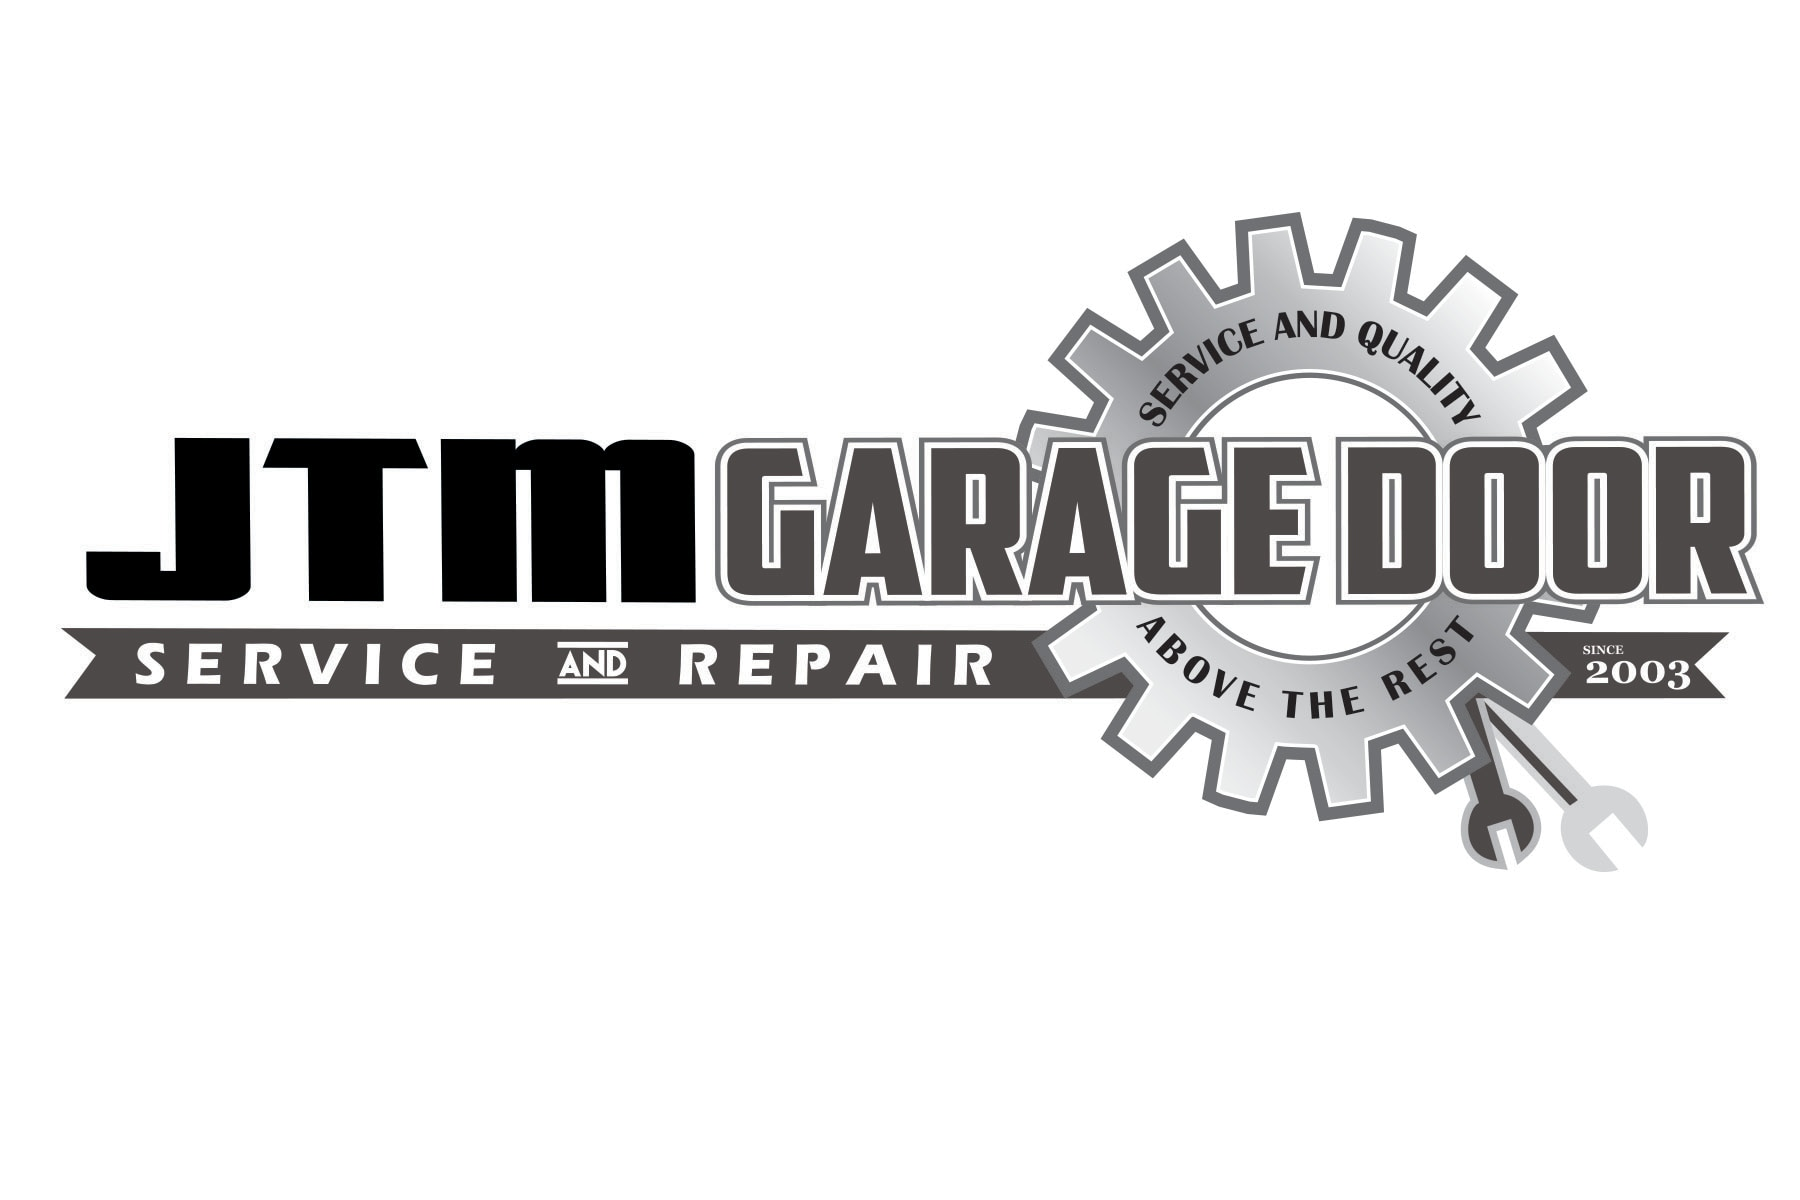 J T M Garage Door Service LLC logo